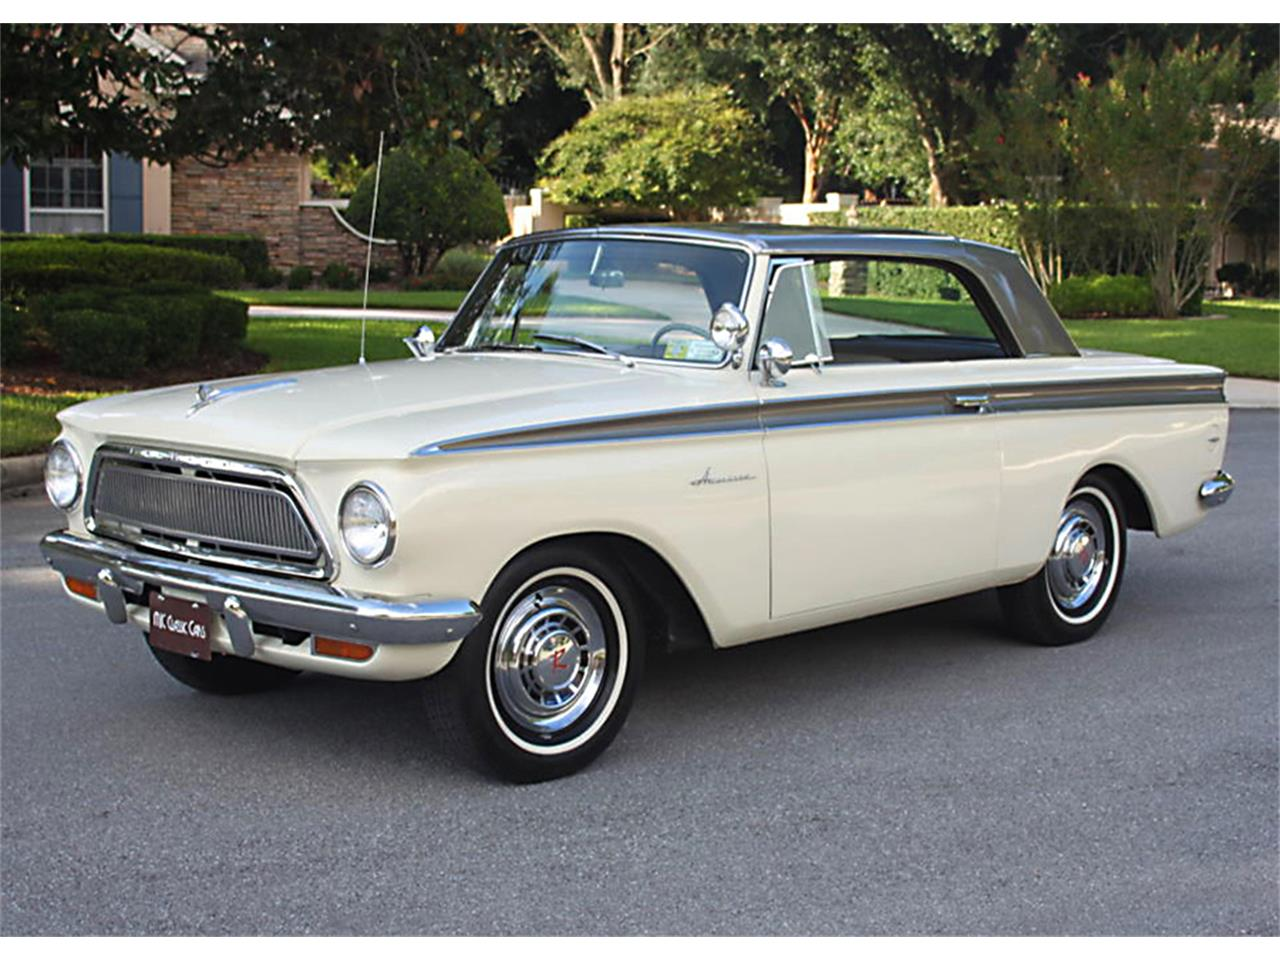 Large Picture of '63 AMC Rambler located in Florida - $19,500.00 - PH4P